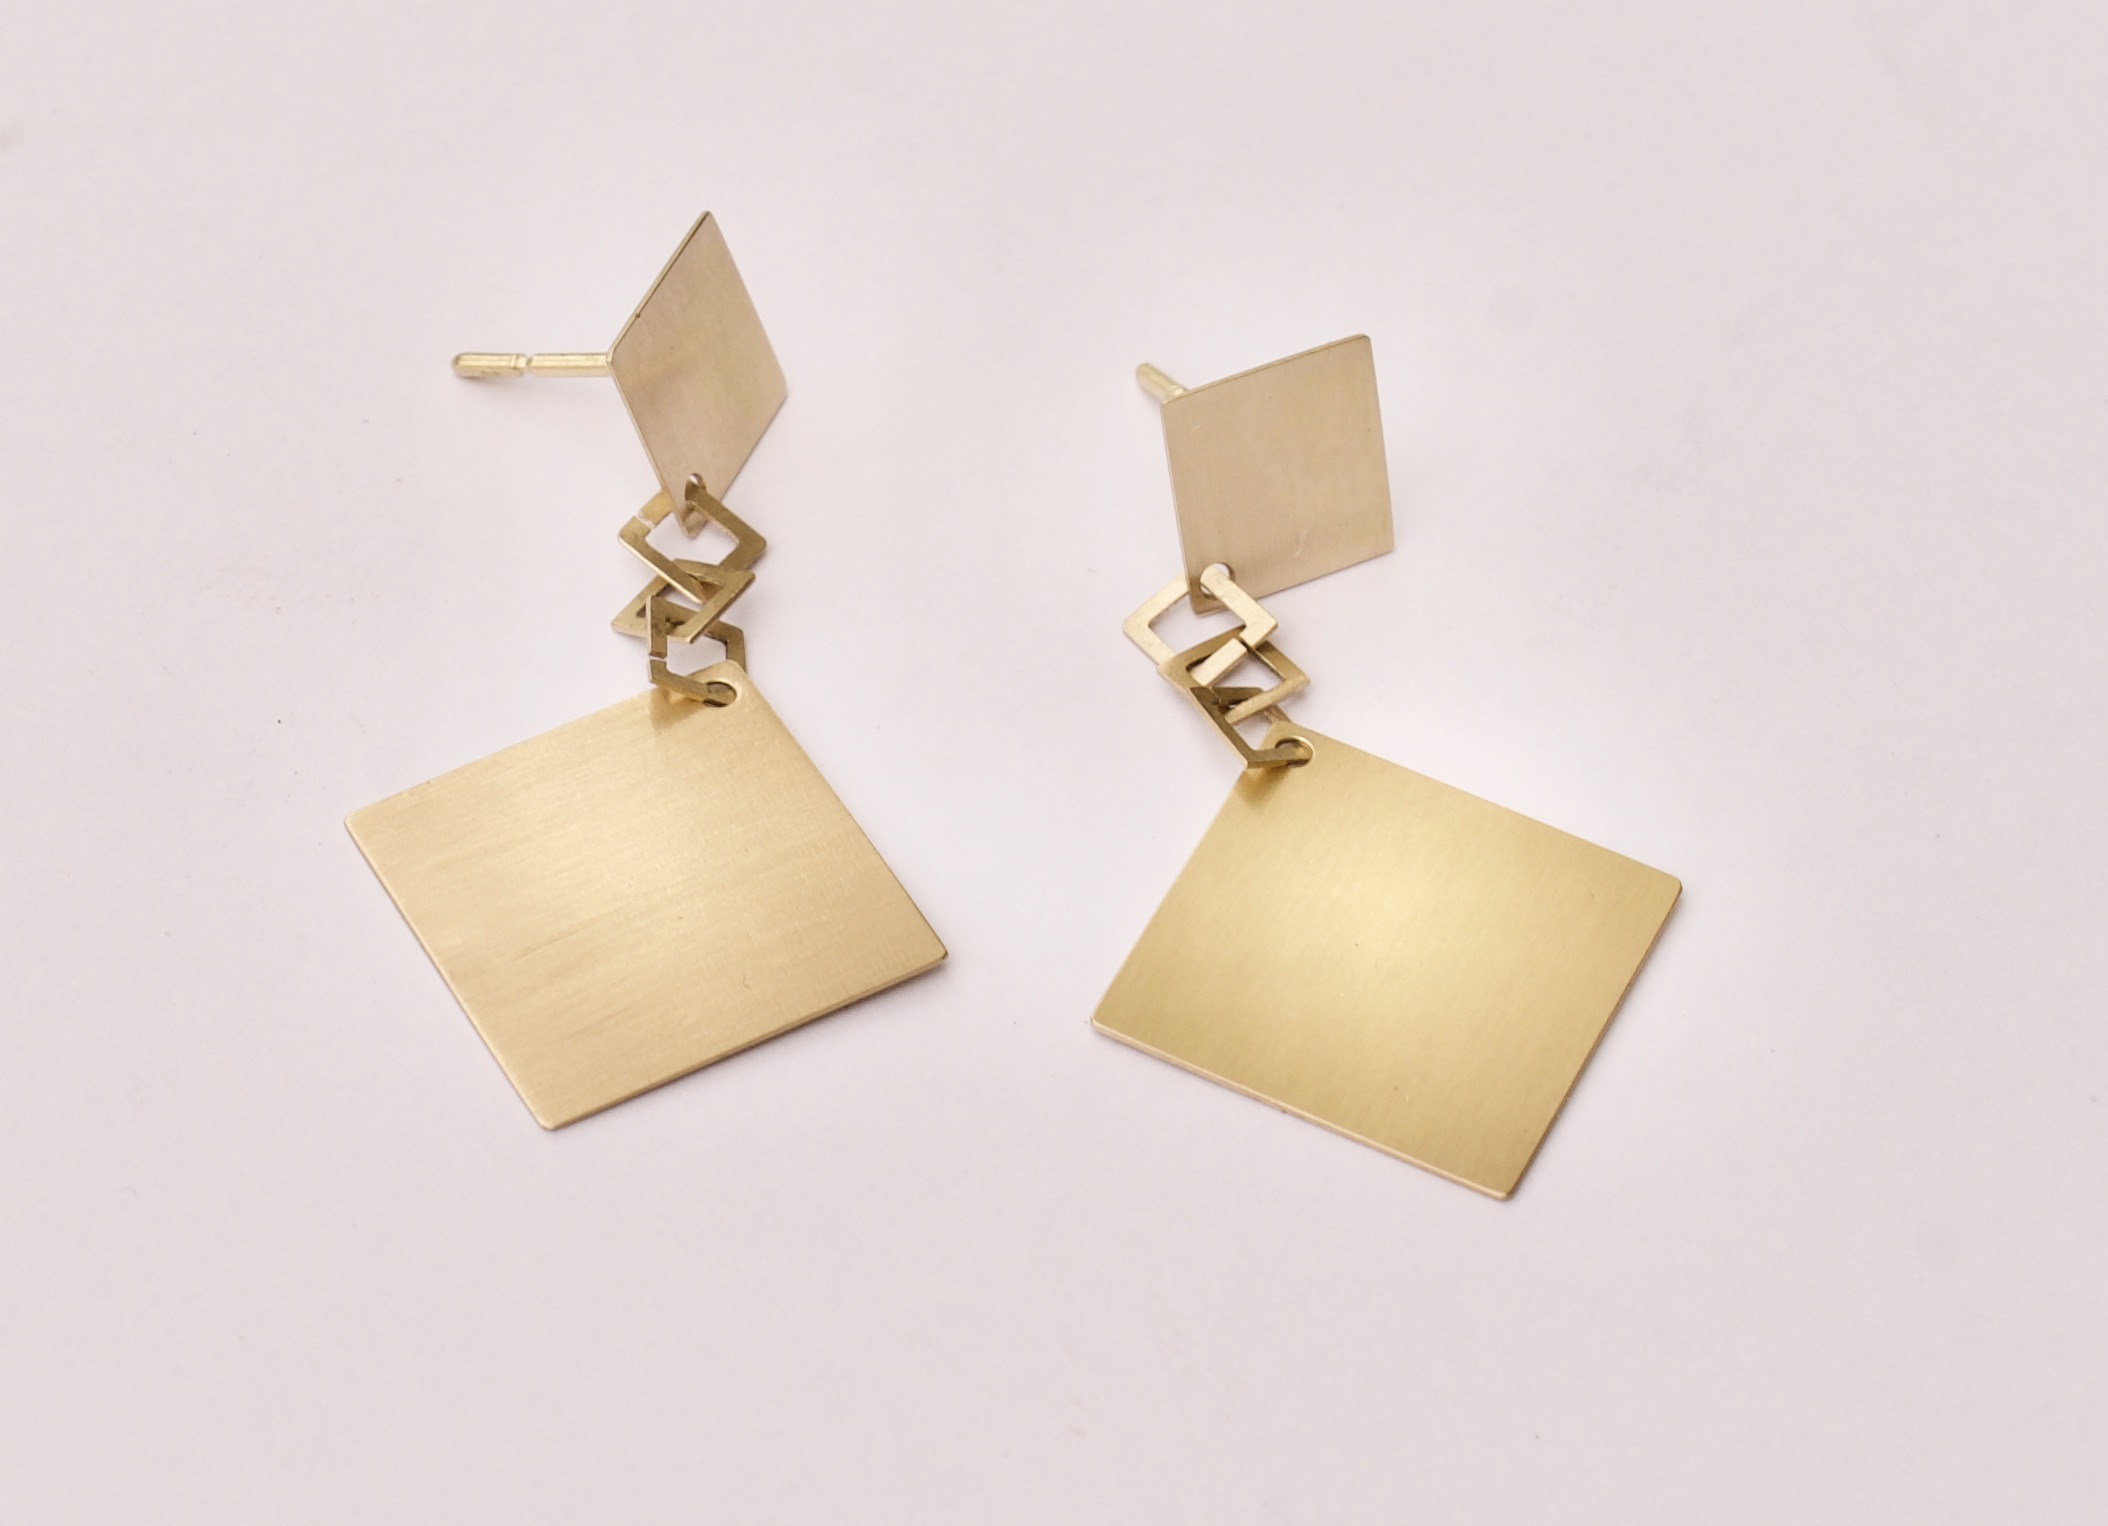 golden earrings 18K : 675 €